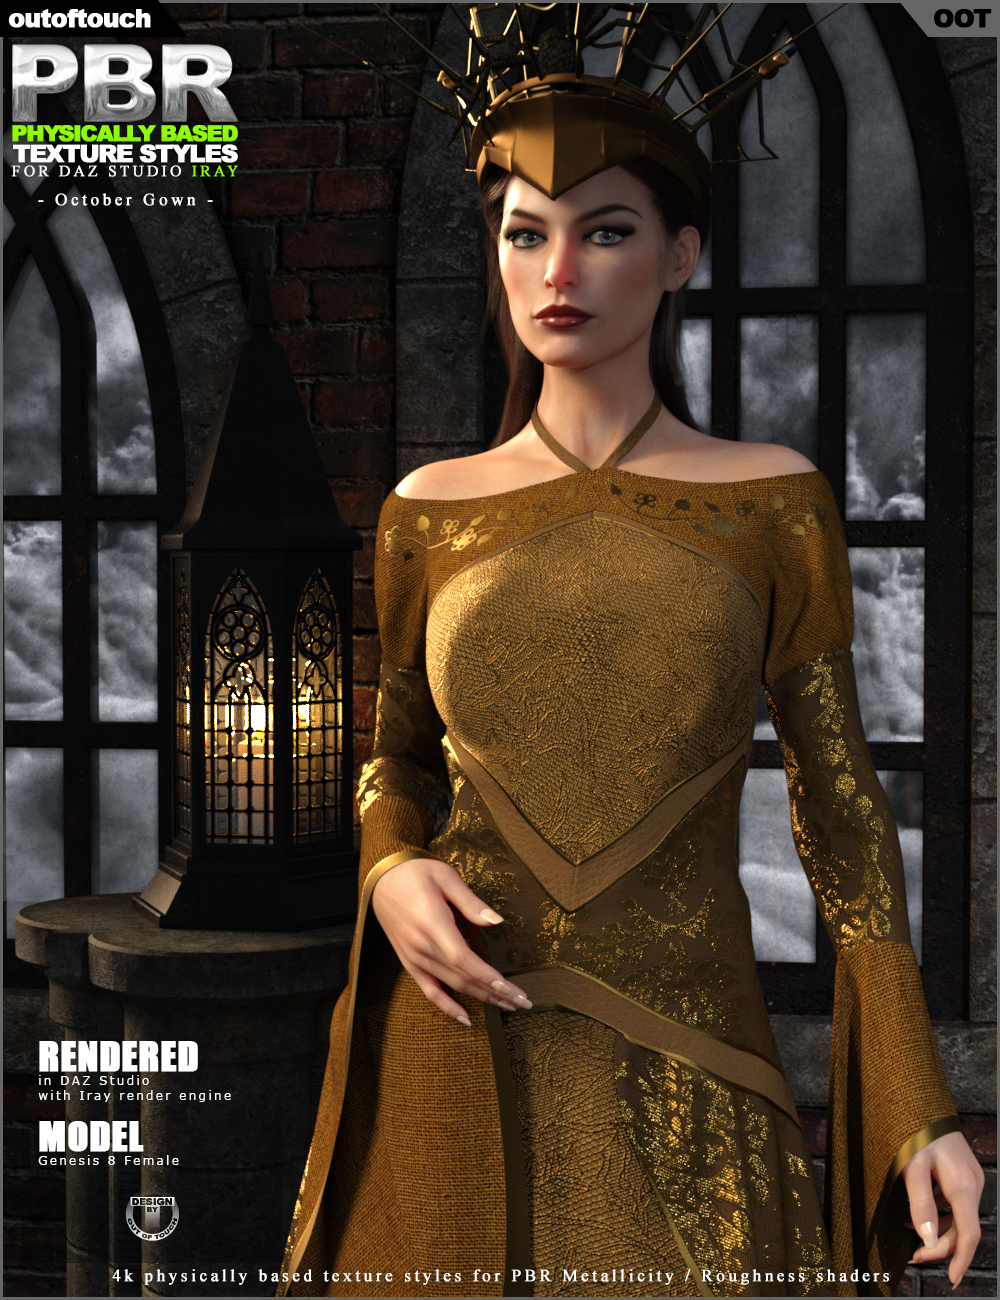 OOT PBR Texture Styles for October Gown